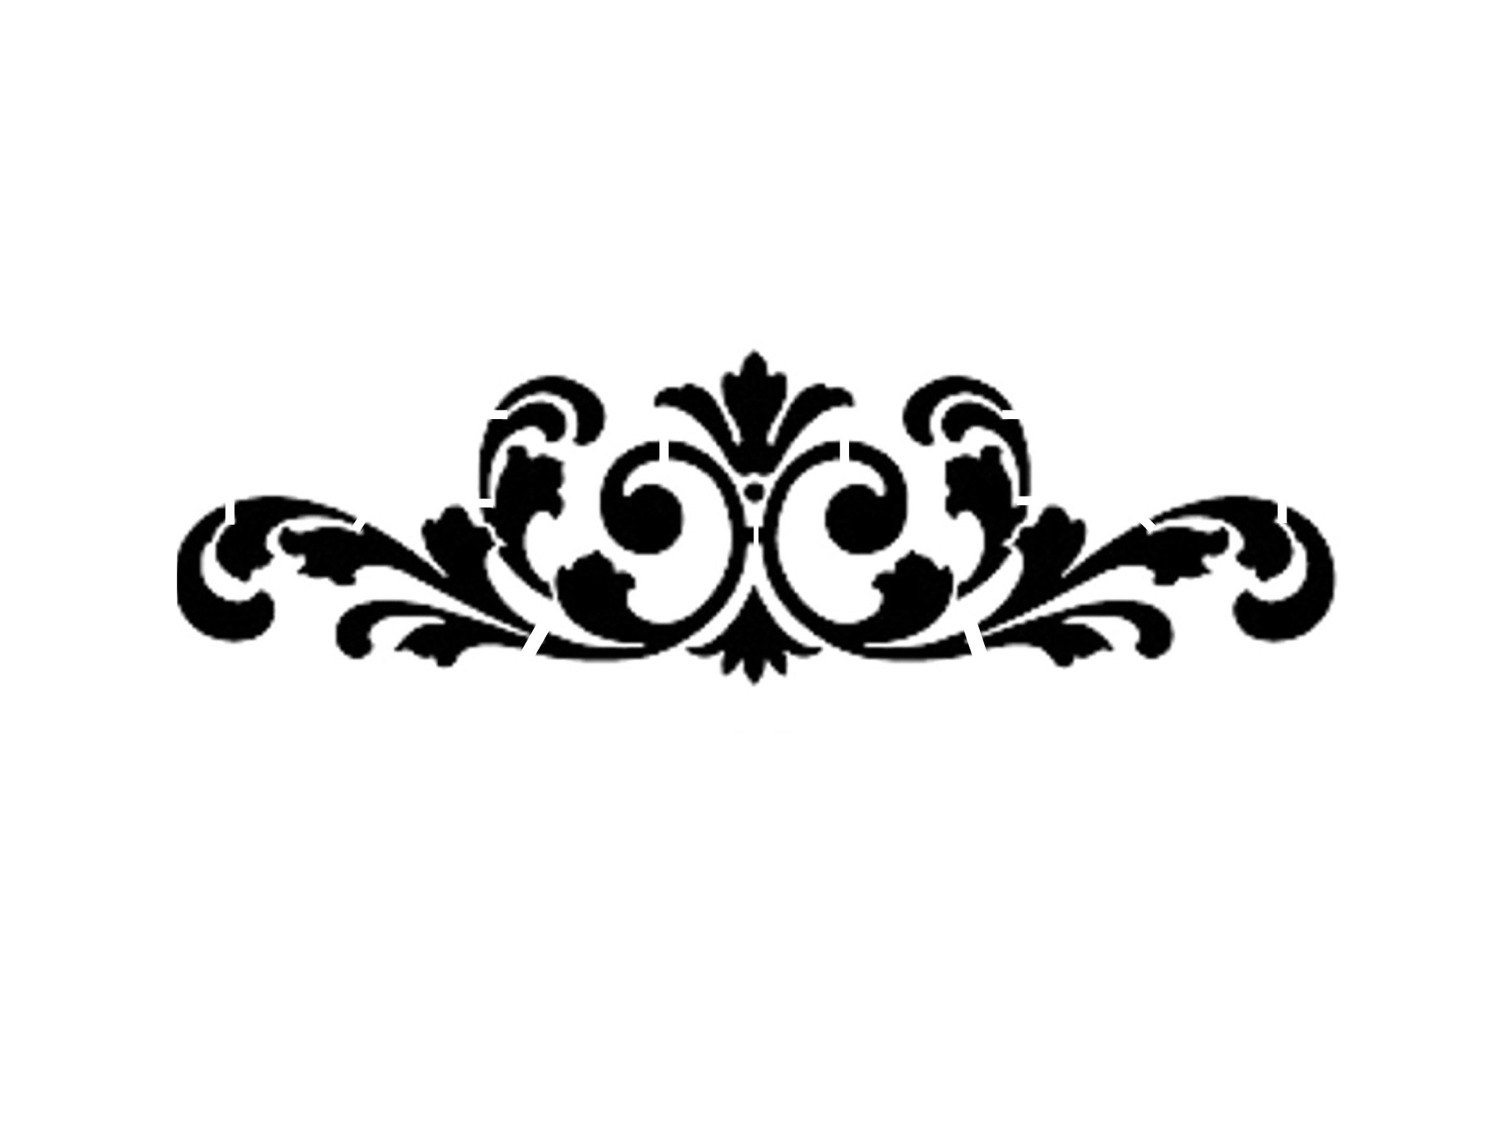 Free Damask Heart Cliparts, Download Free Clip Art, Free Clip Art on.